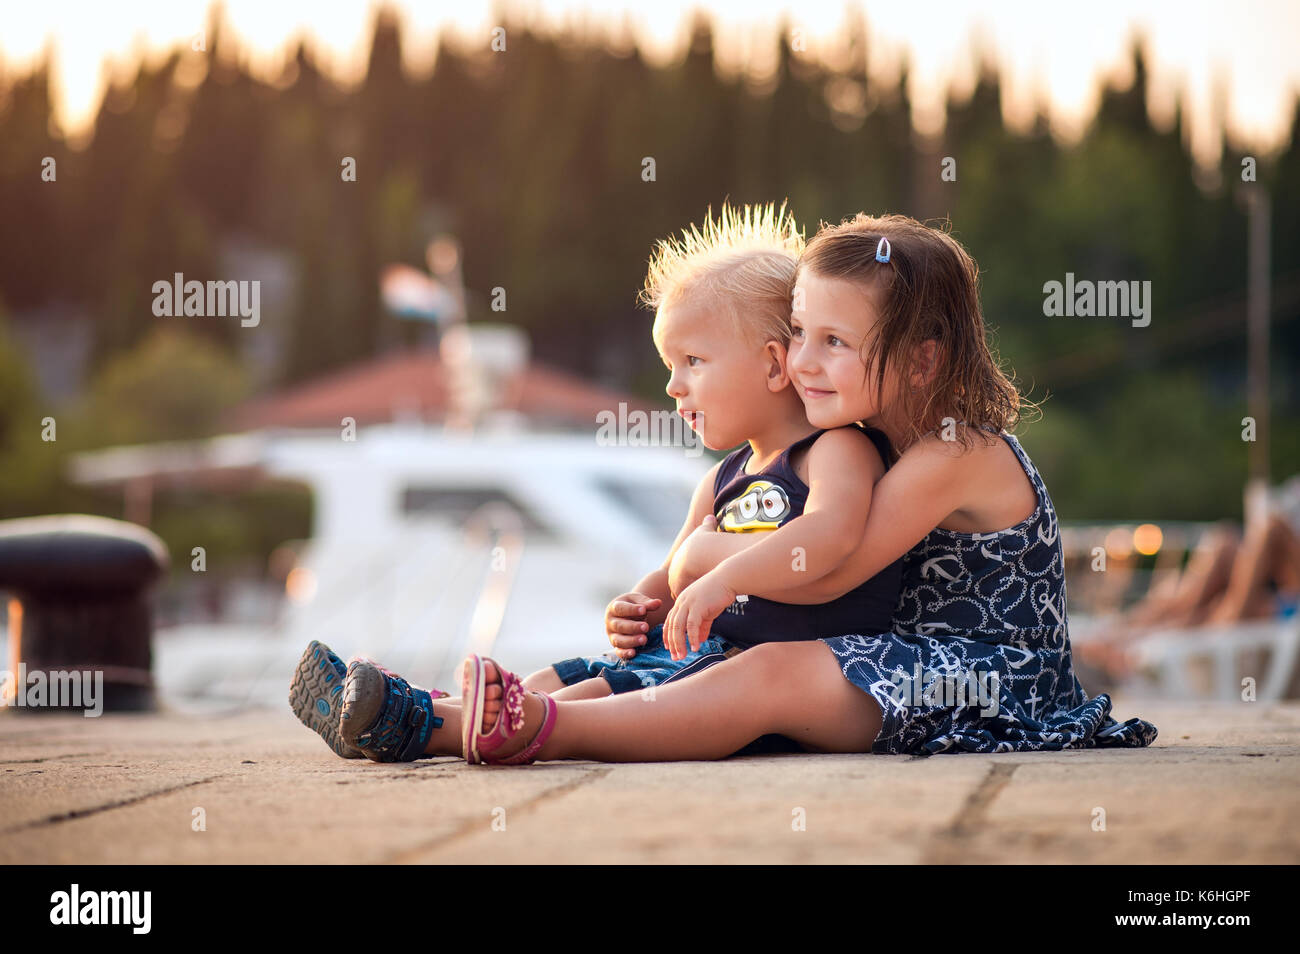 childern on a vacation - Stock Image